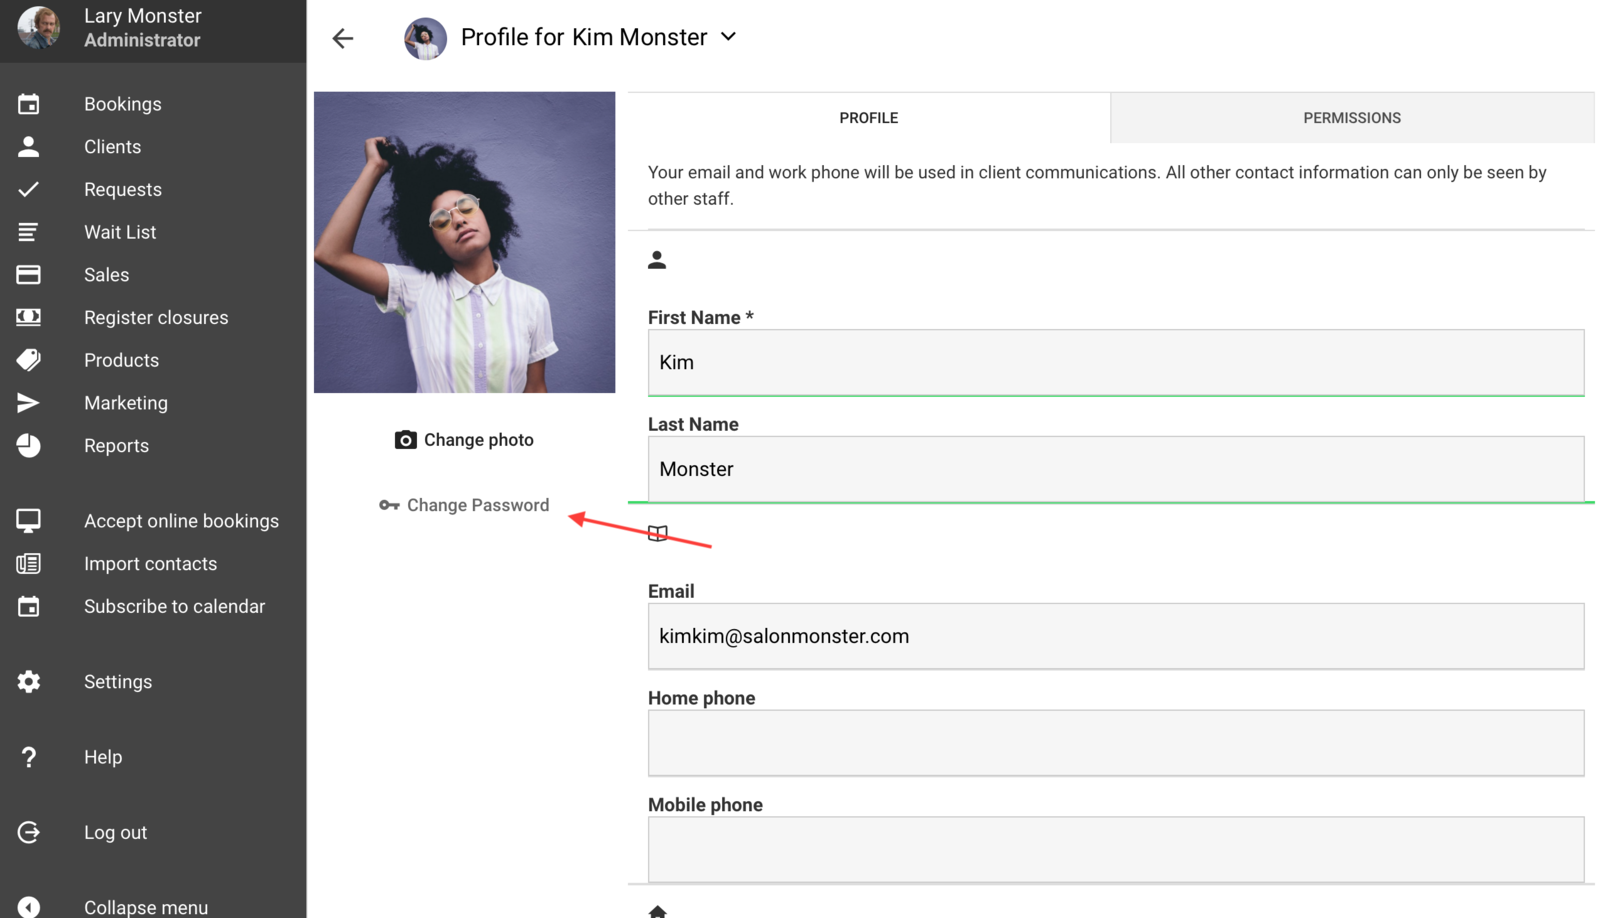 Adding/changing a staff password